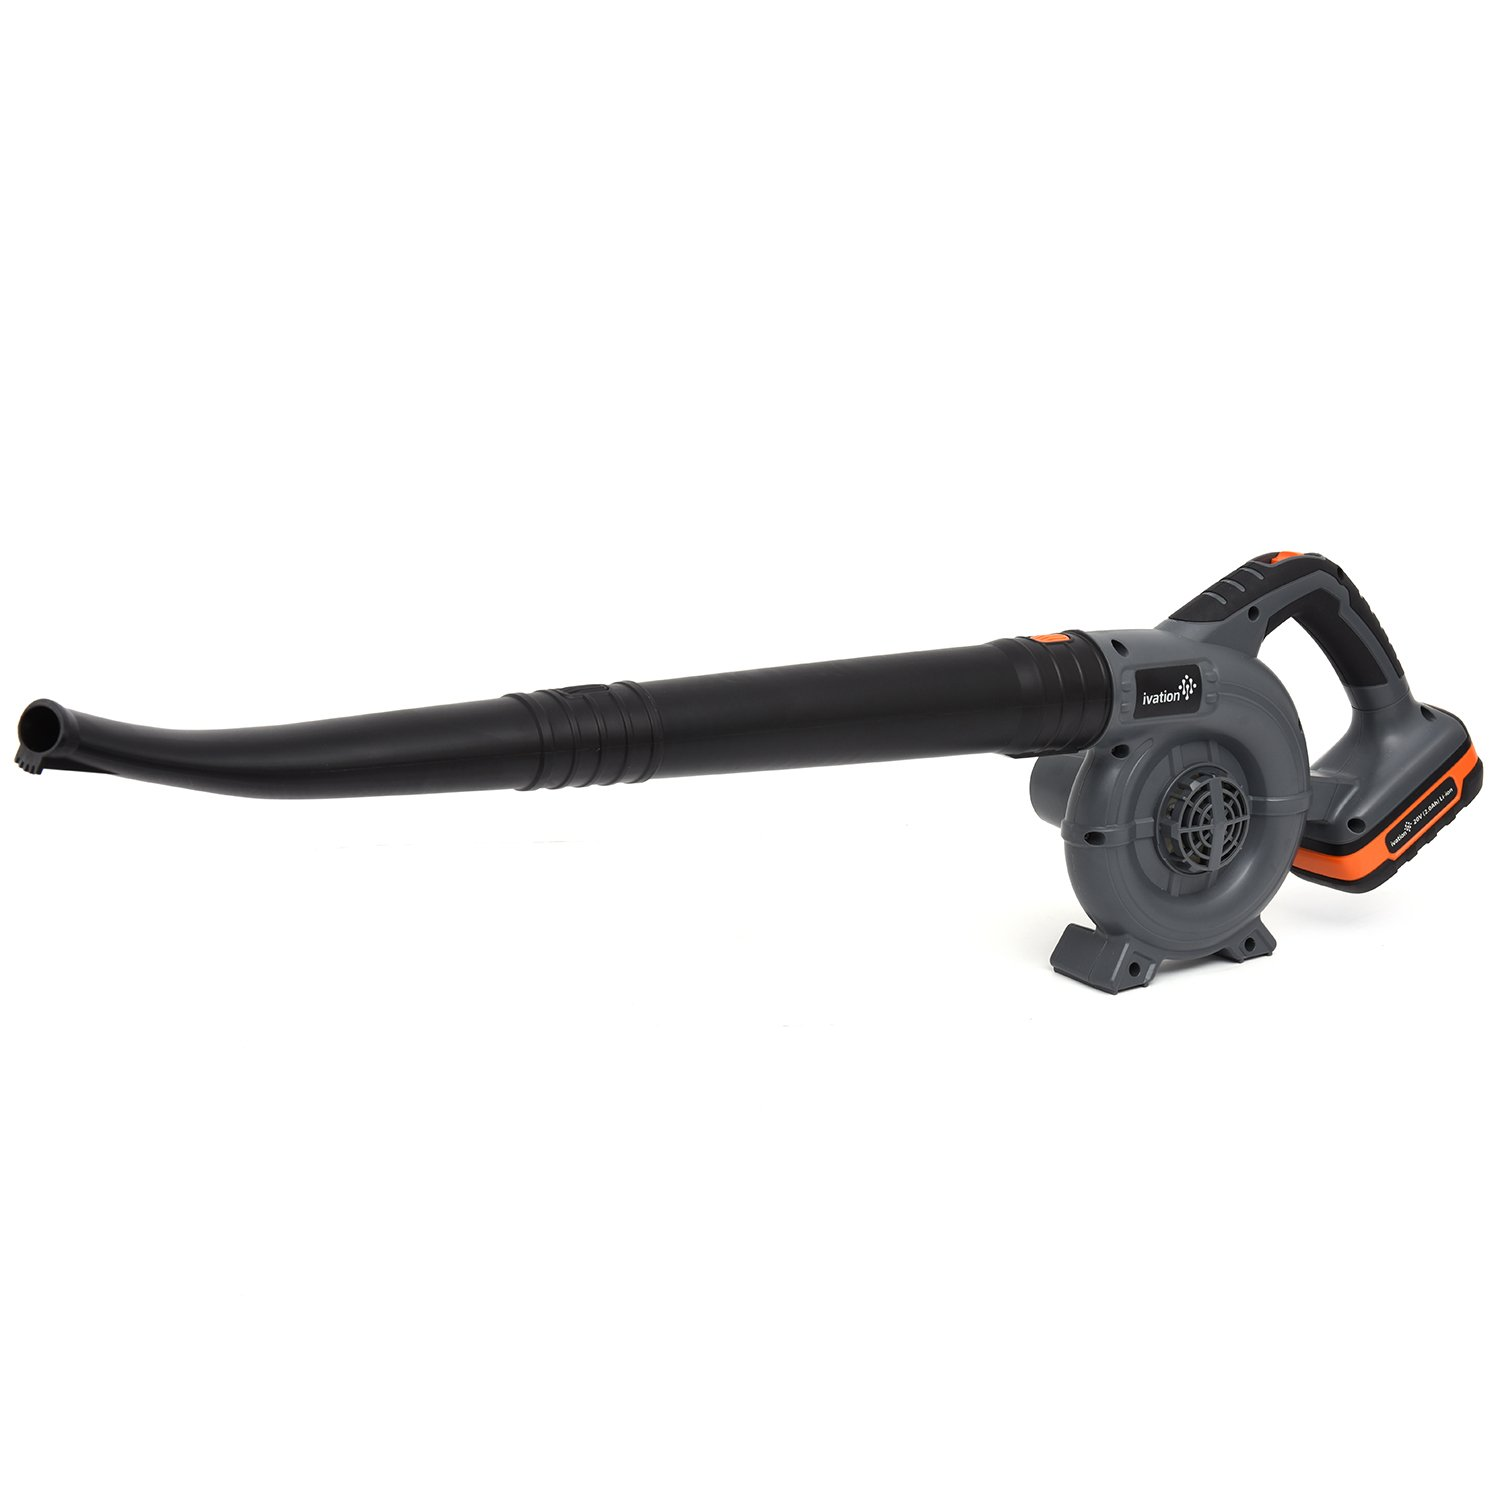 Ivation 20V Electric Cordless Leaf Blower – Handheld Sweeper, Lithium Ion Battery with 2.0AH for Maximum Power